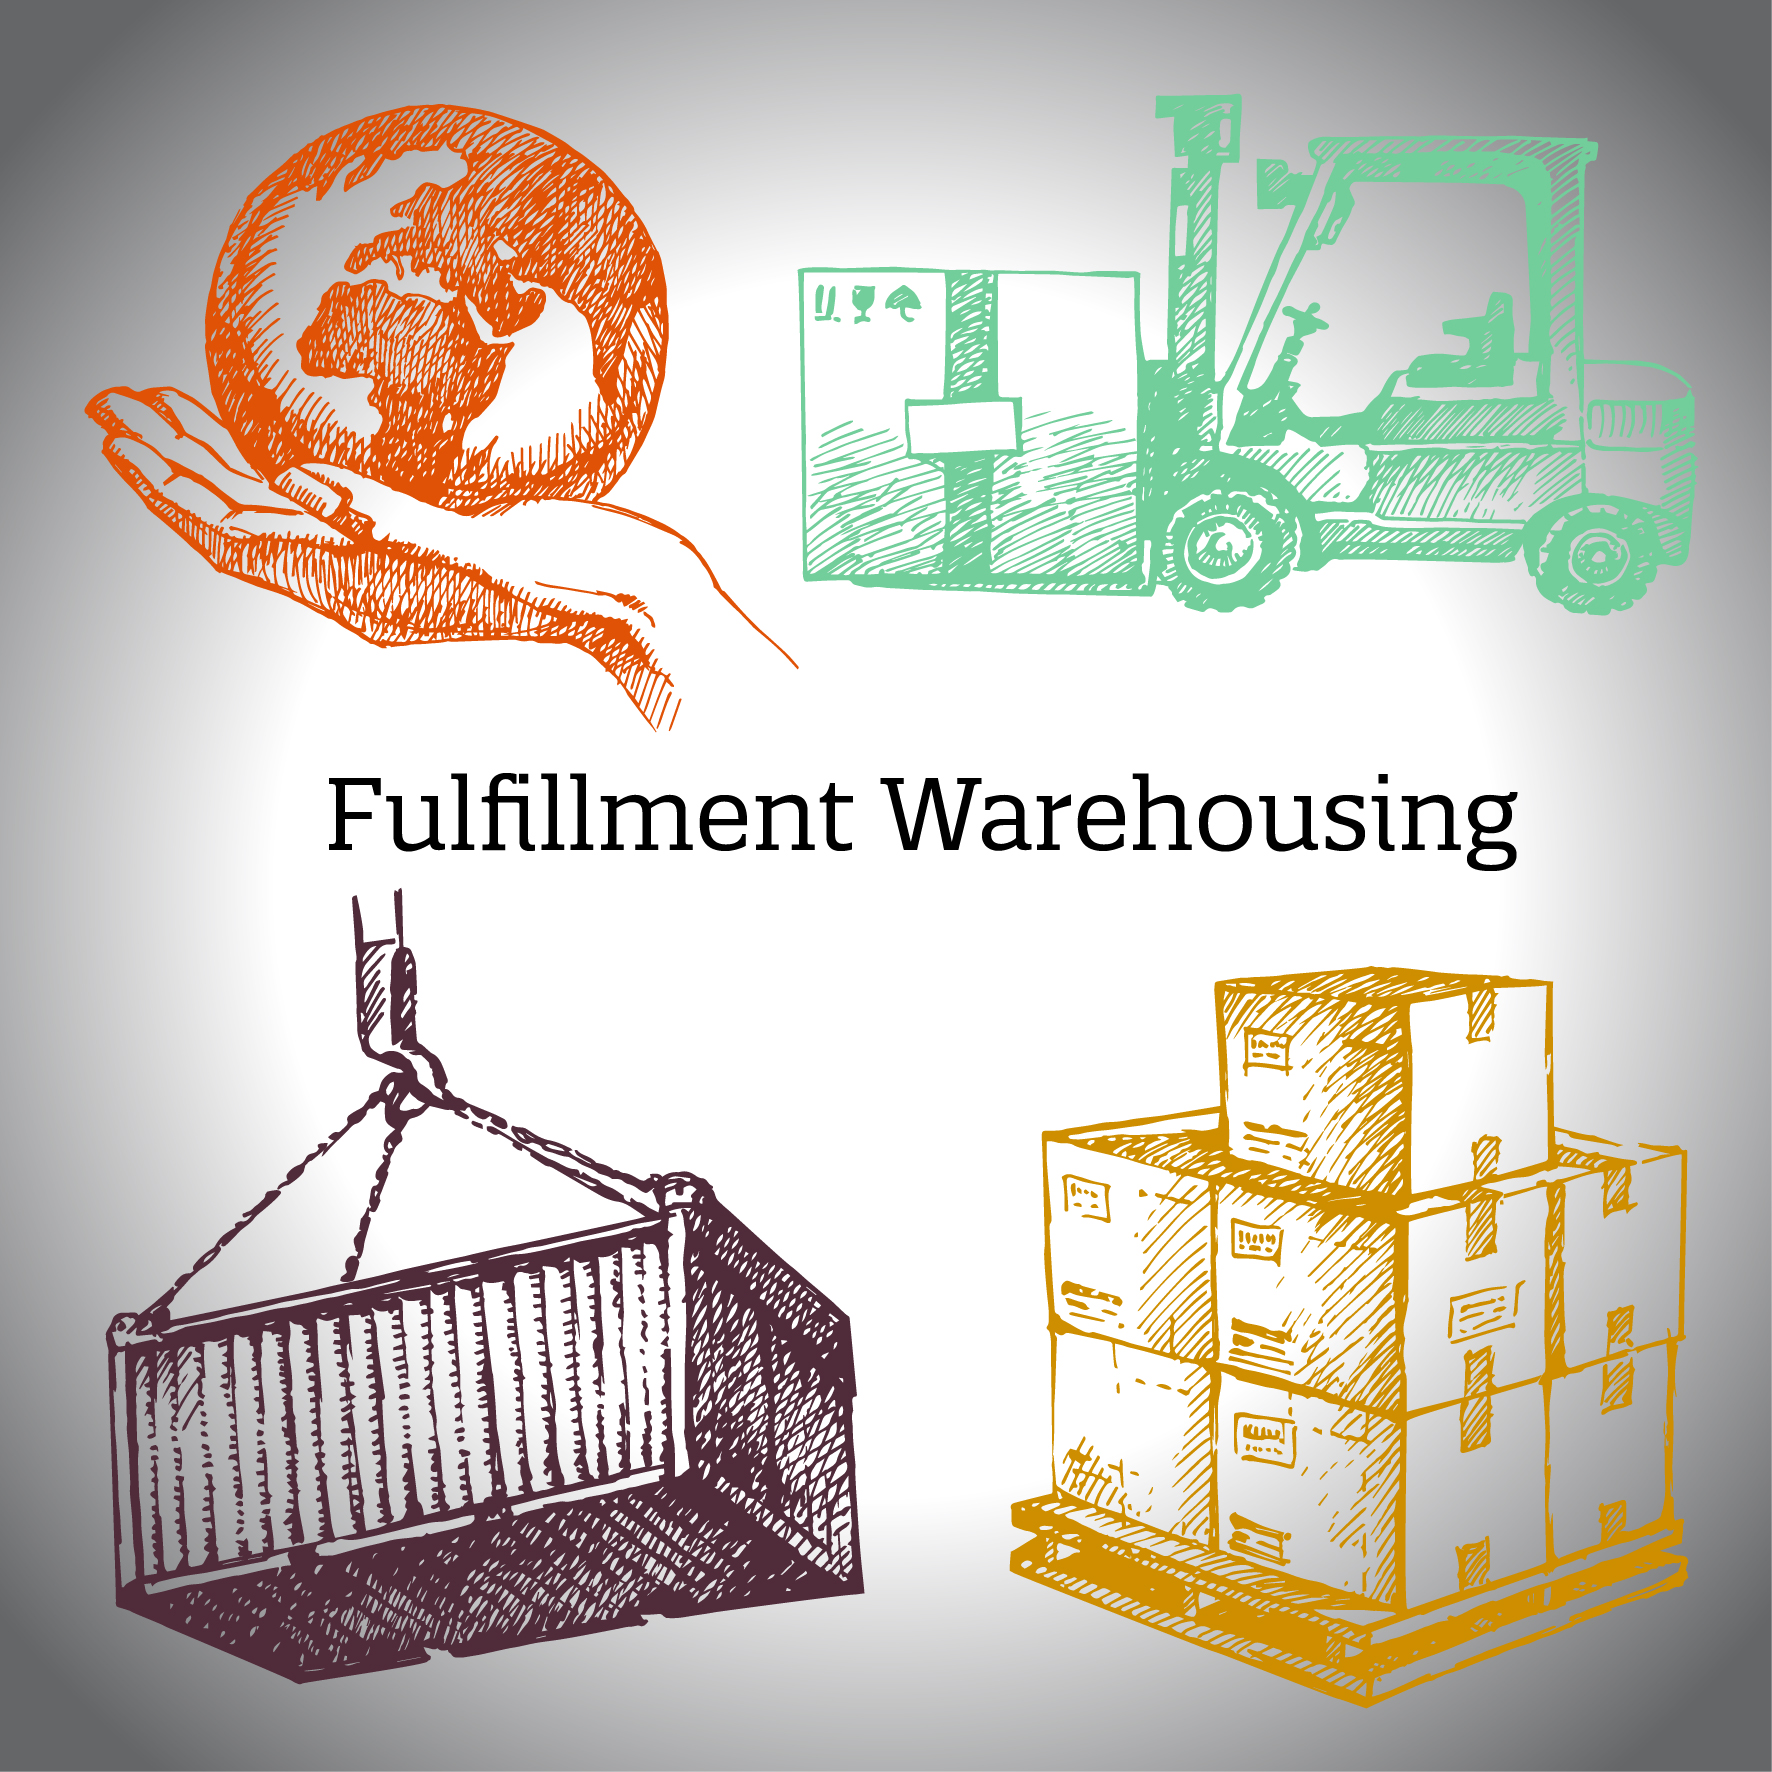 Fulfillment Warehousing - Samuel Shapiro & Co.